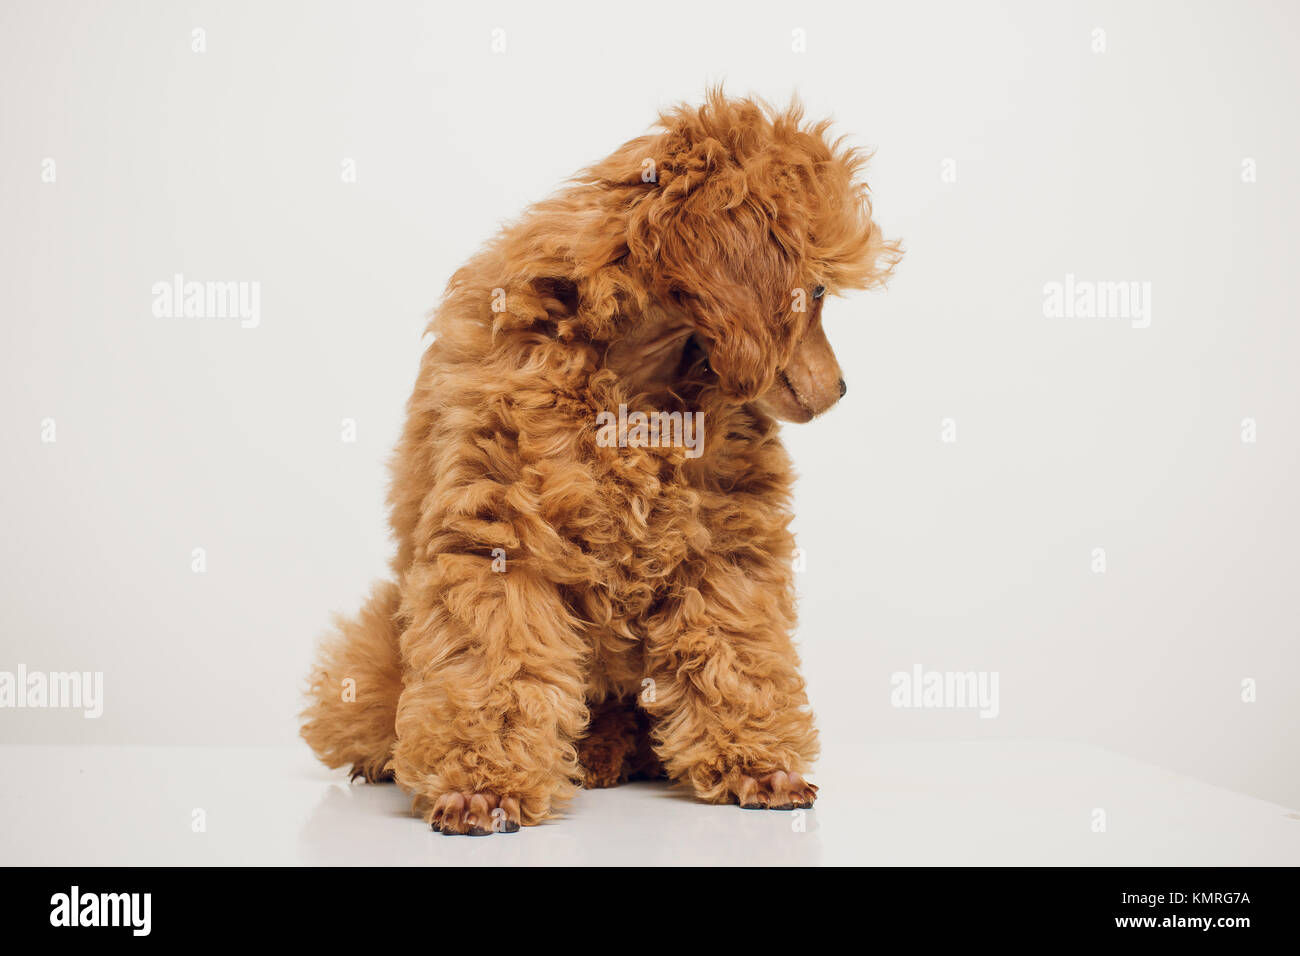 Great Fur Brown Adorable Dog - adorable-mini-toy-poodle-with-golden-brown-fur-on-a-white-background-KMRG7A  Trends_551494  .jpg